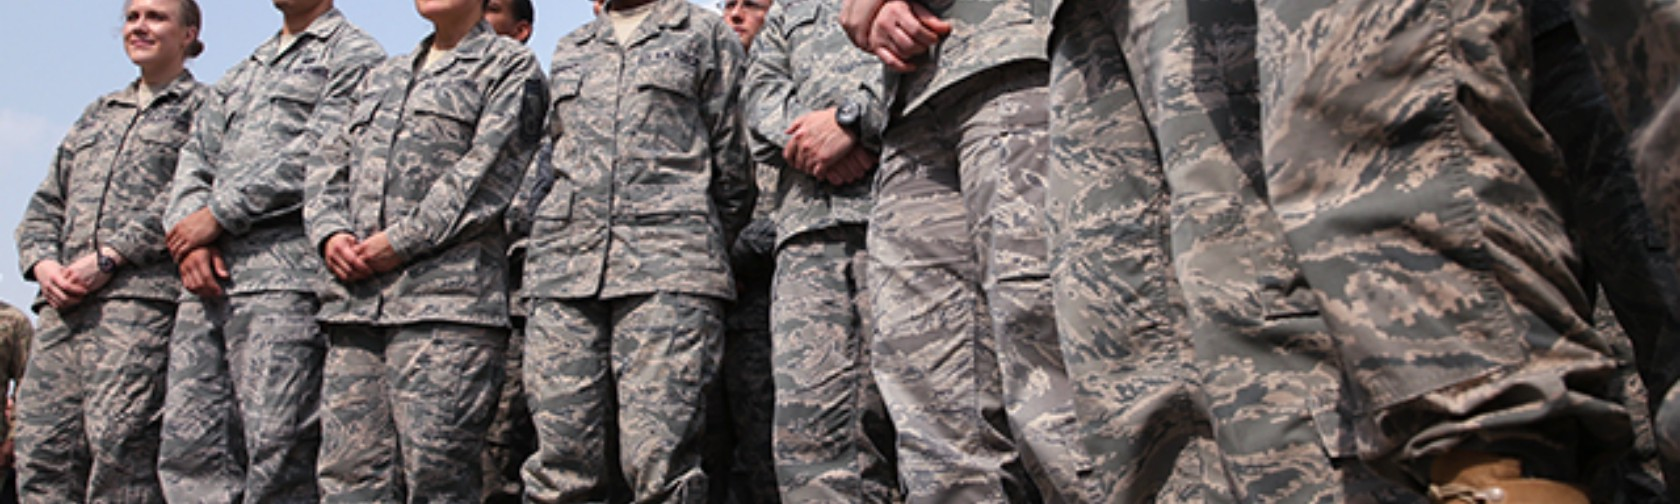 6 facts about the U S  military's changing demographics | Pew